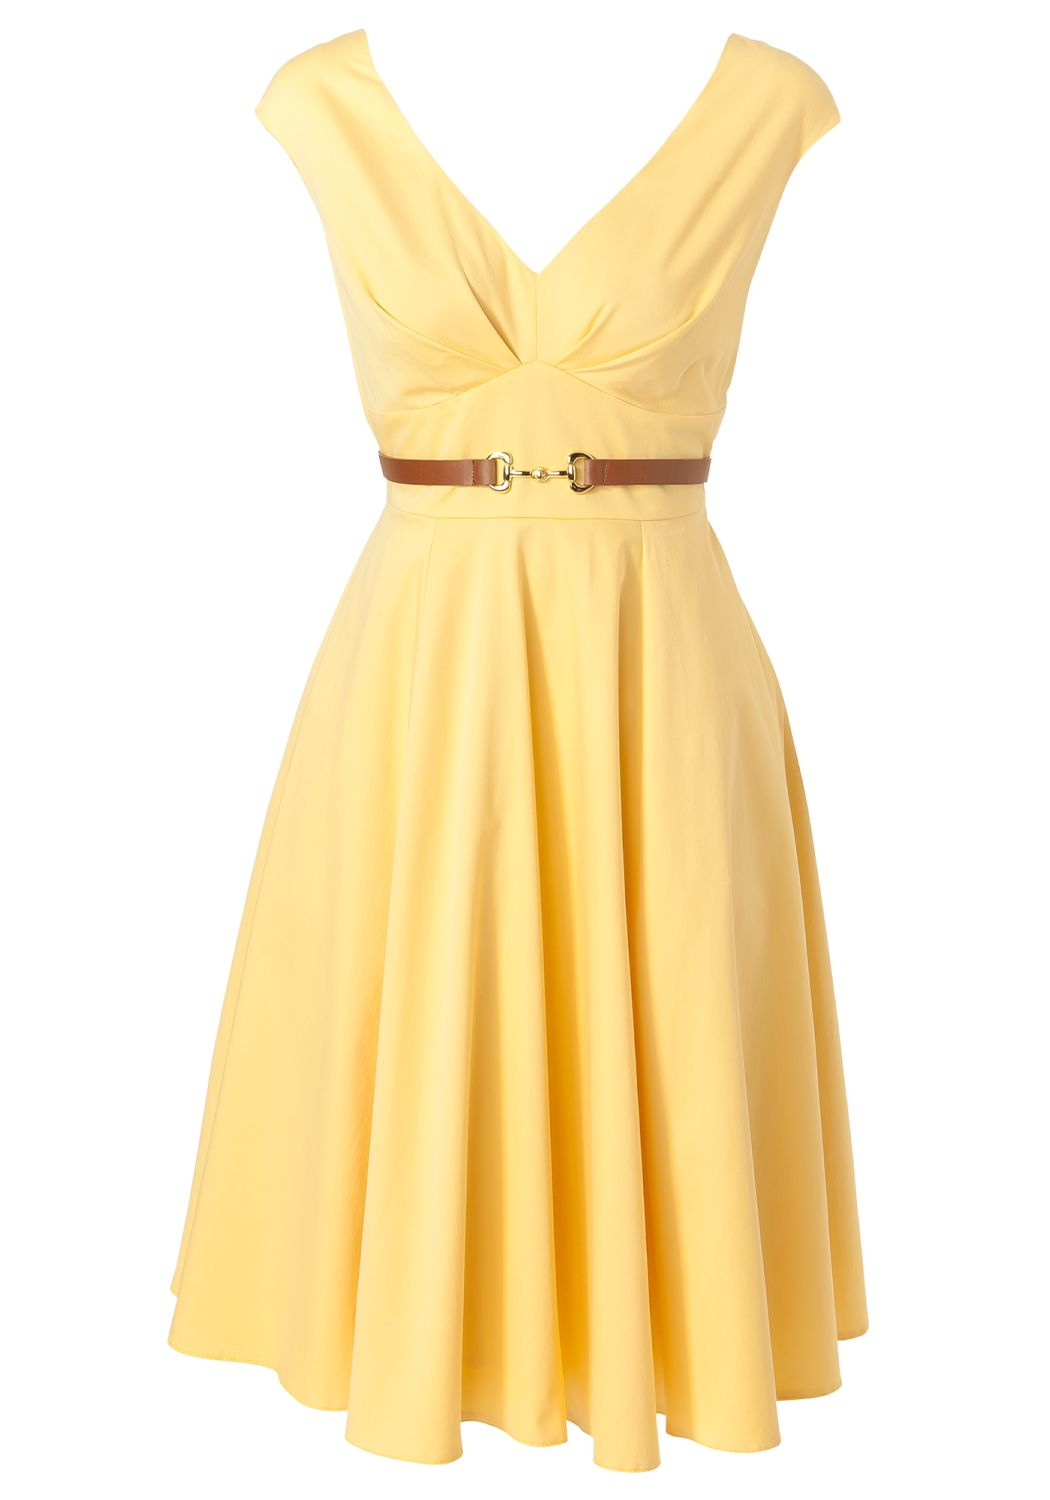 this would be beautiful to wear for a cute lightweight